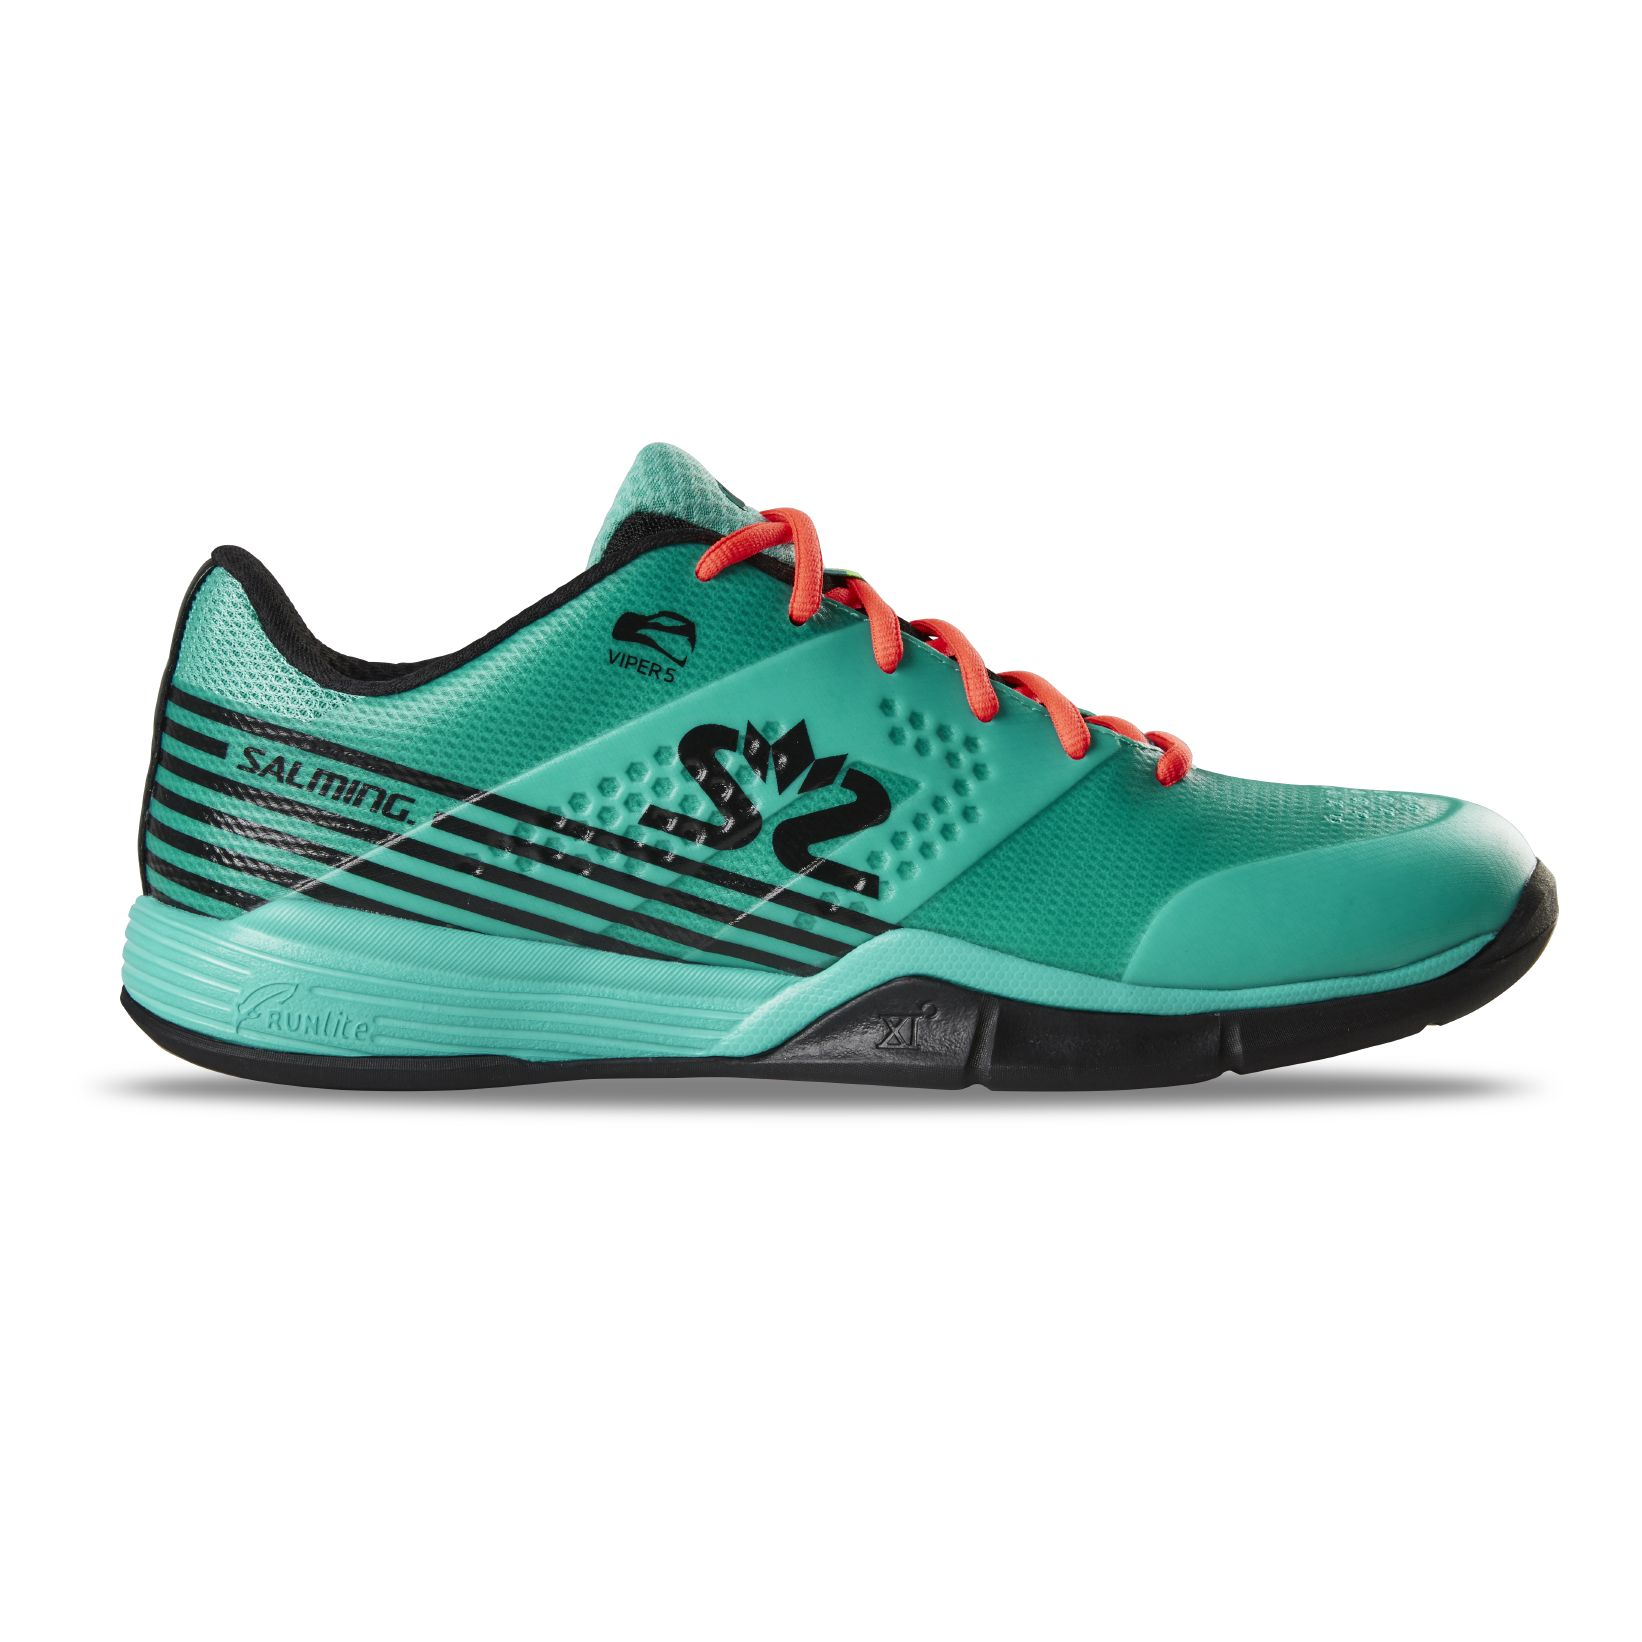 Salming Viper 5 Shoe Men Turquoise/Black 13 UK - 49 1/3 EUR - 32 cm